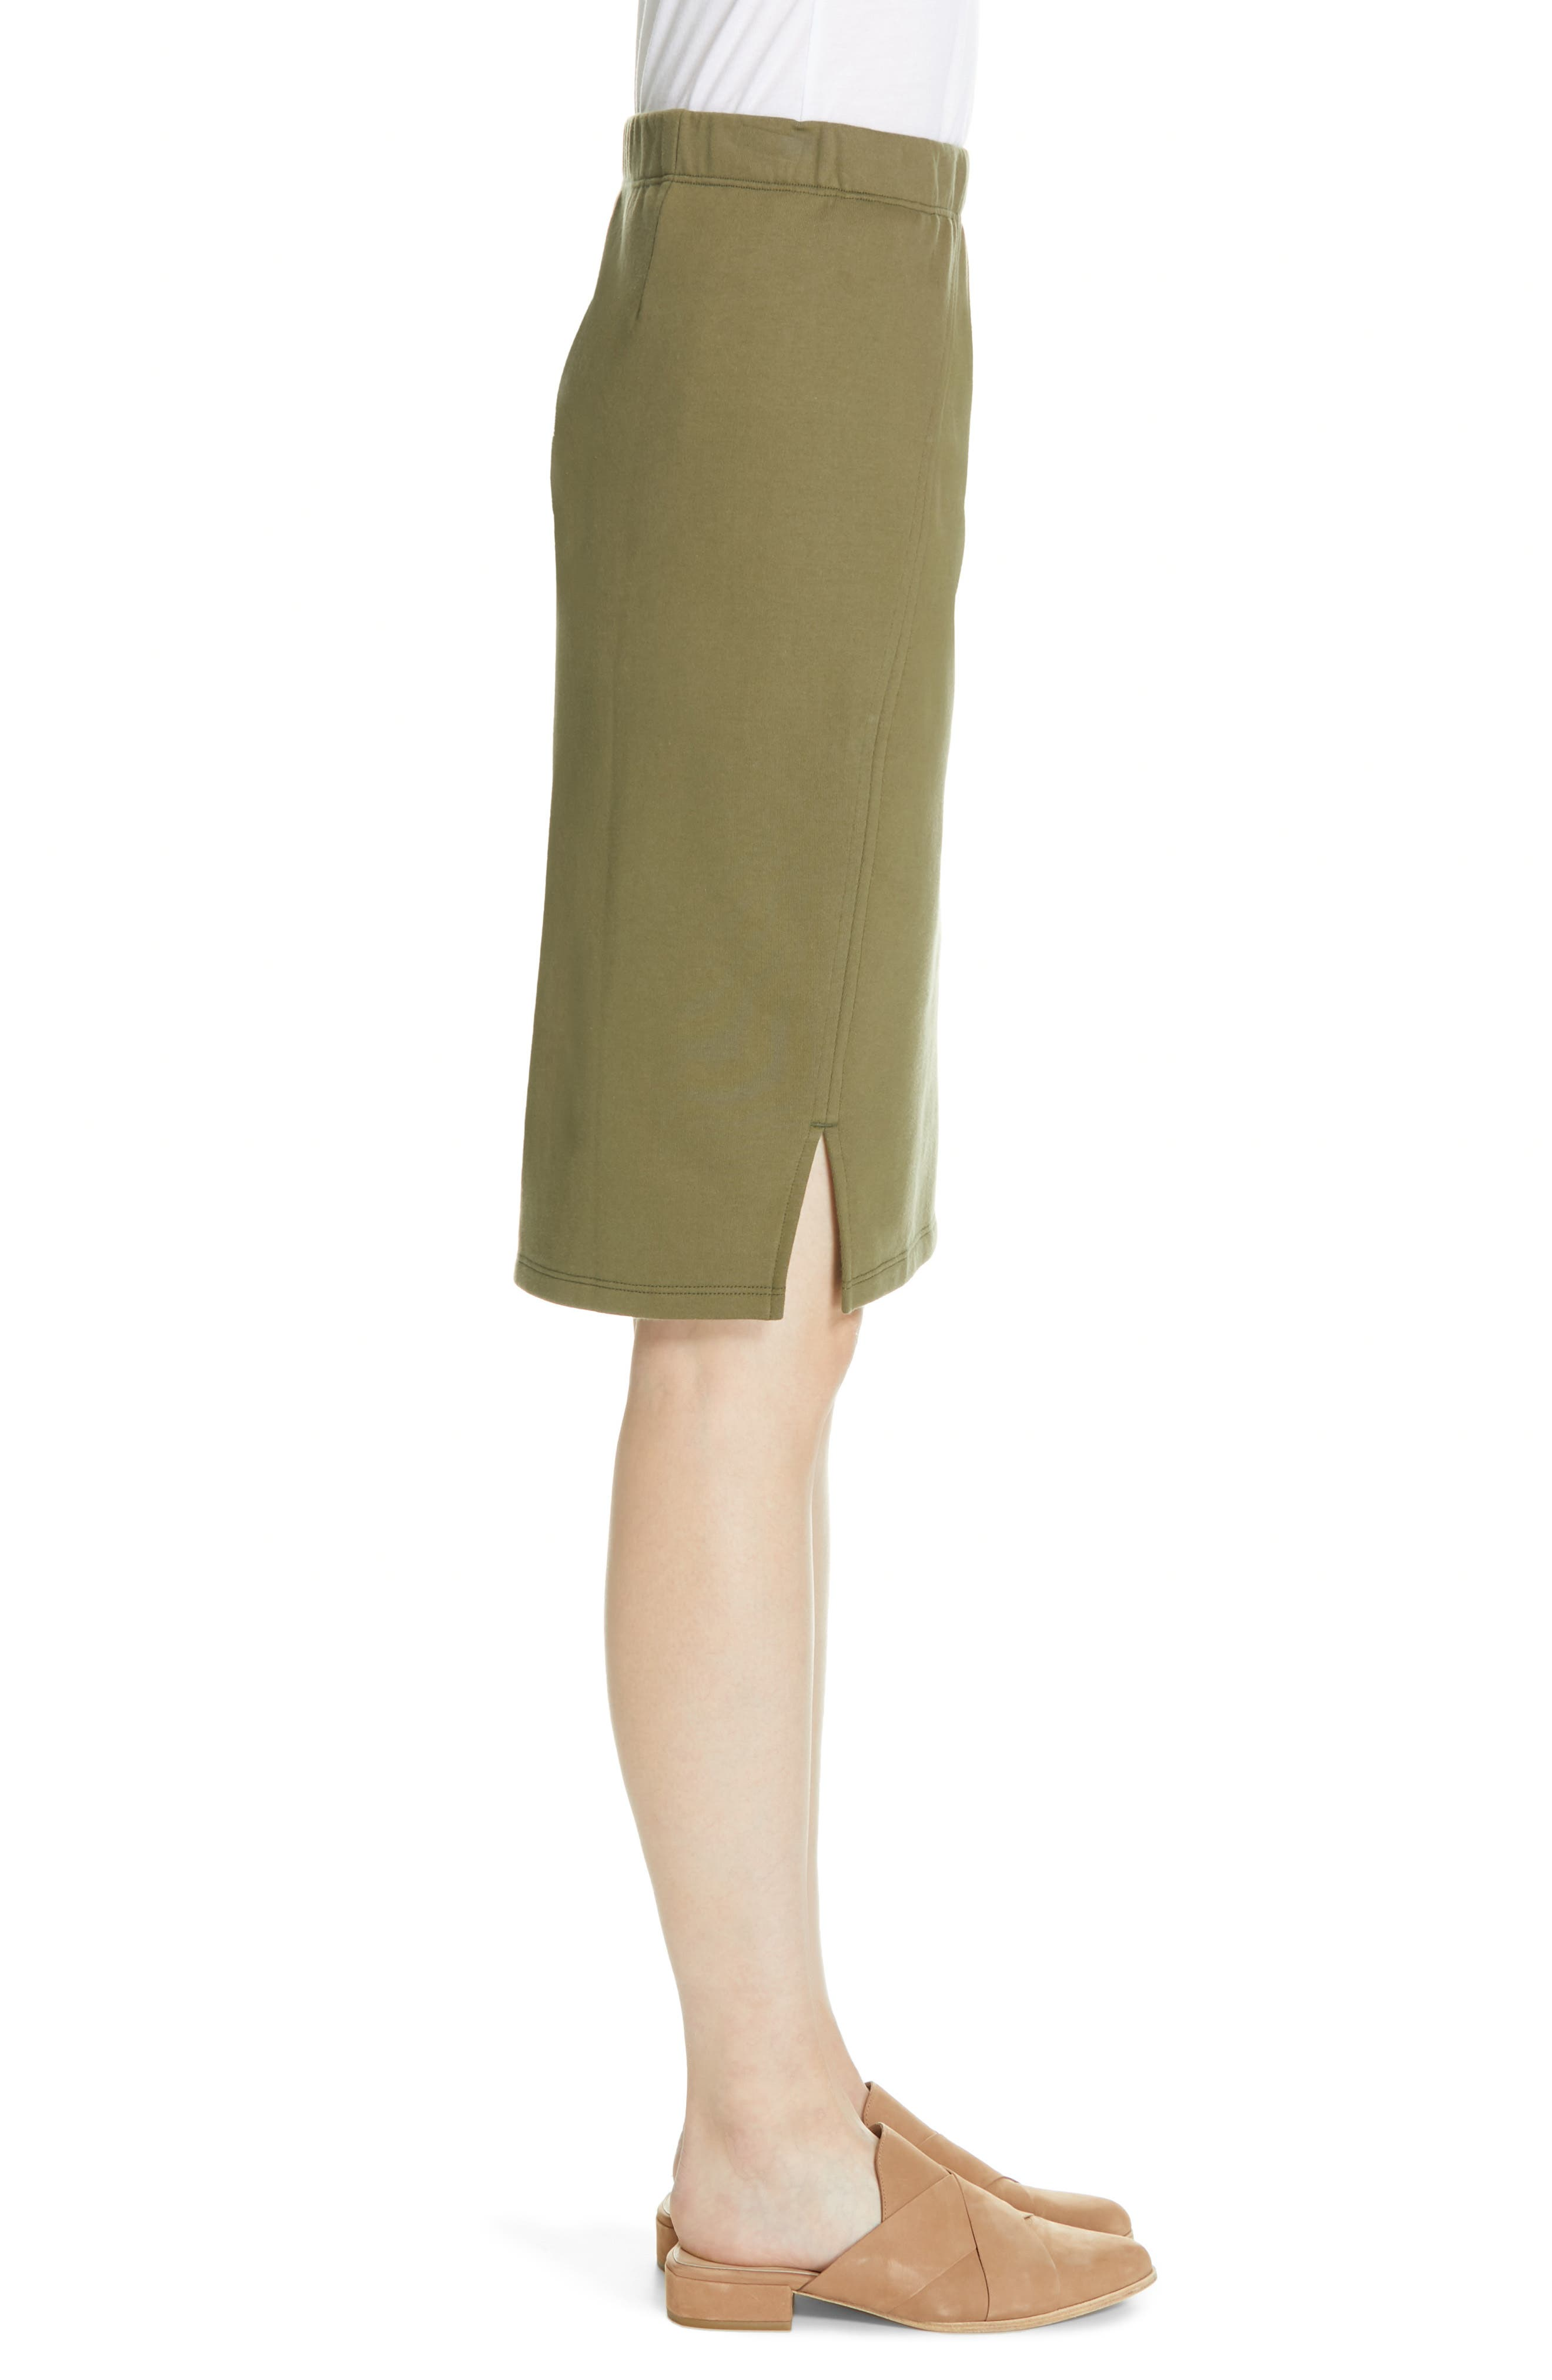 EILEEN FISHER, Organic Cotton Pencil Skirt, Alternate thumbnail 3, color, OLIVE